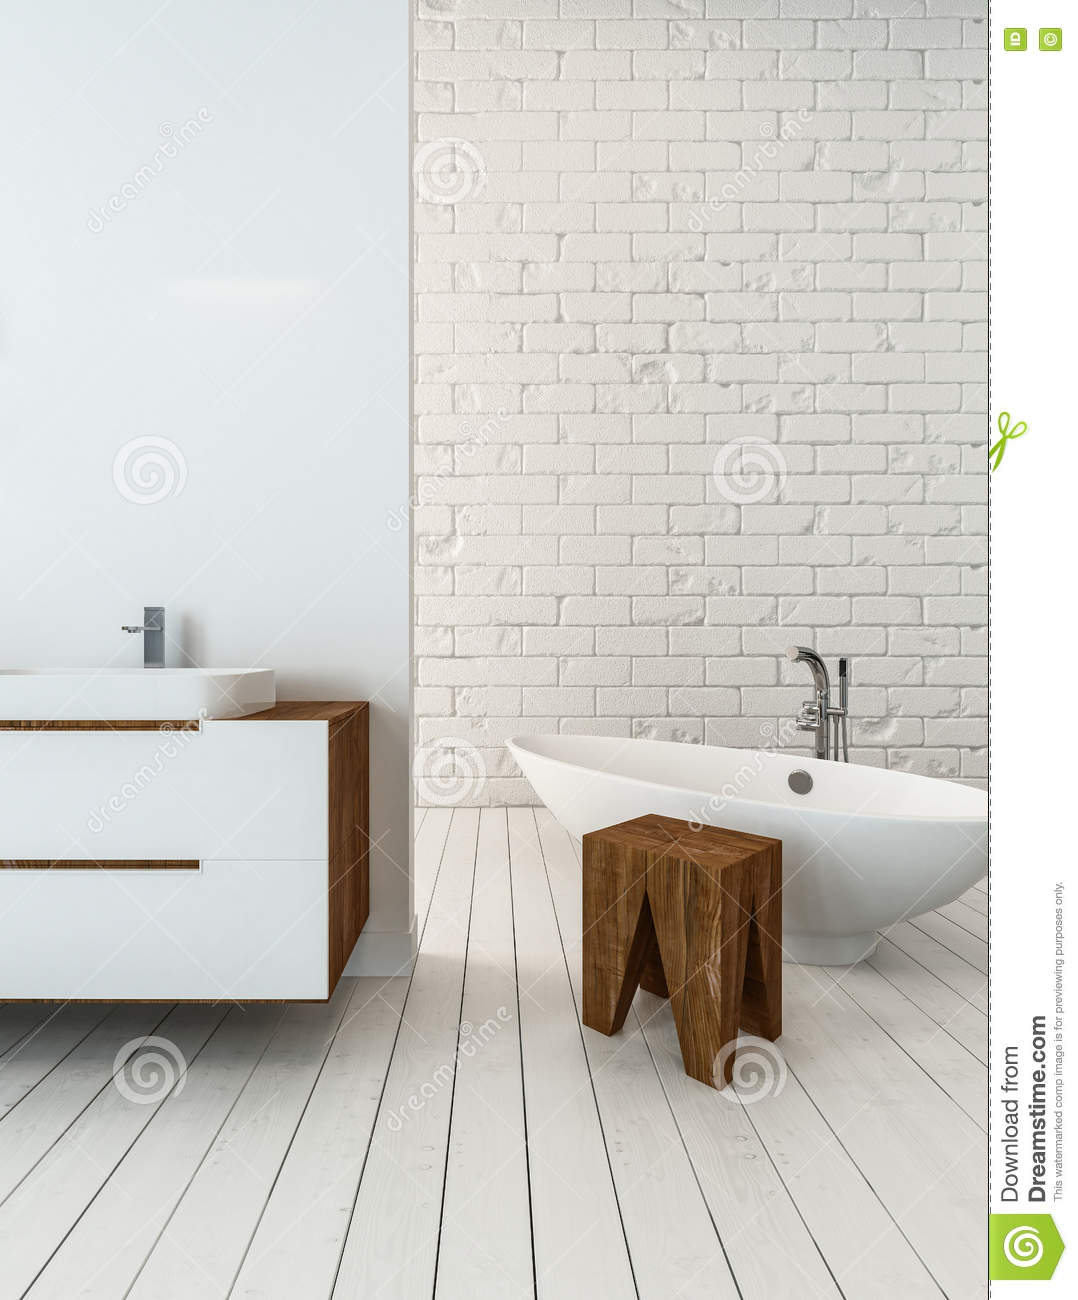 Tub And Stool Beside Sink In Bathroom Stock Illustration ...